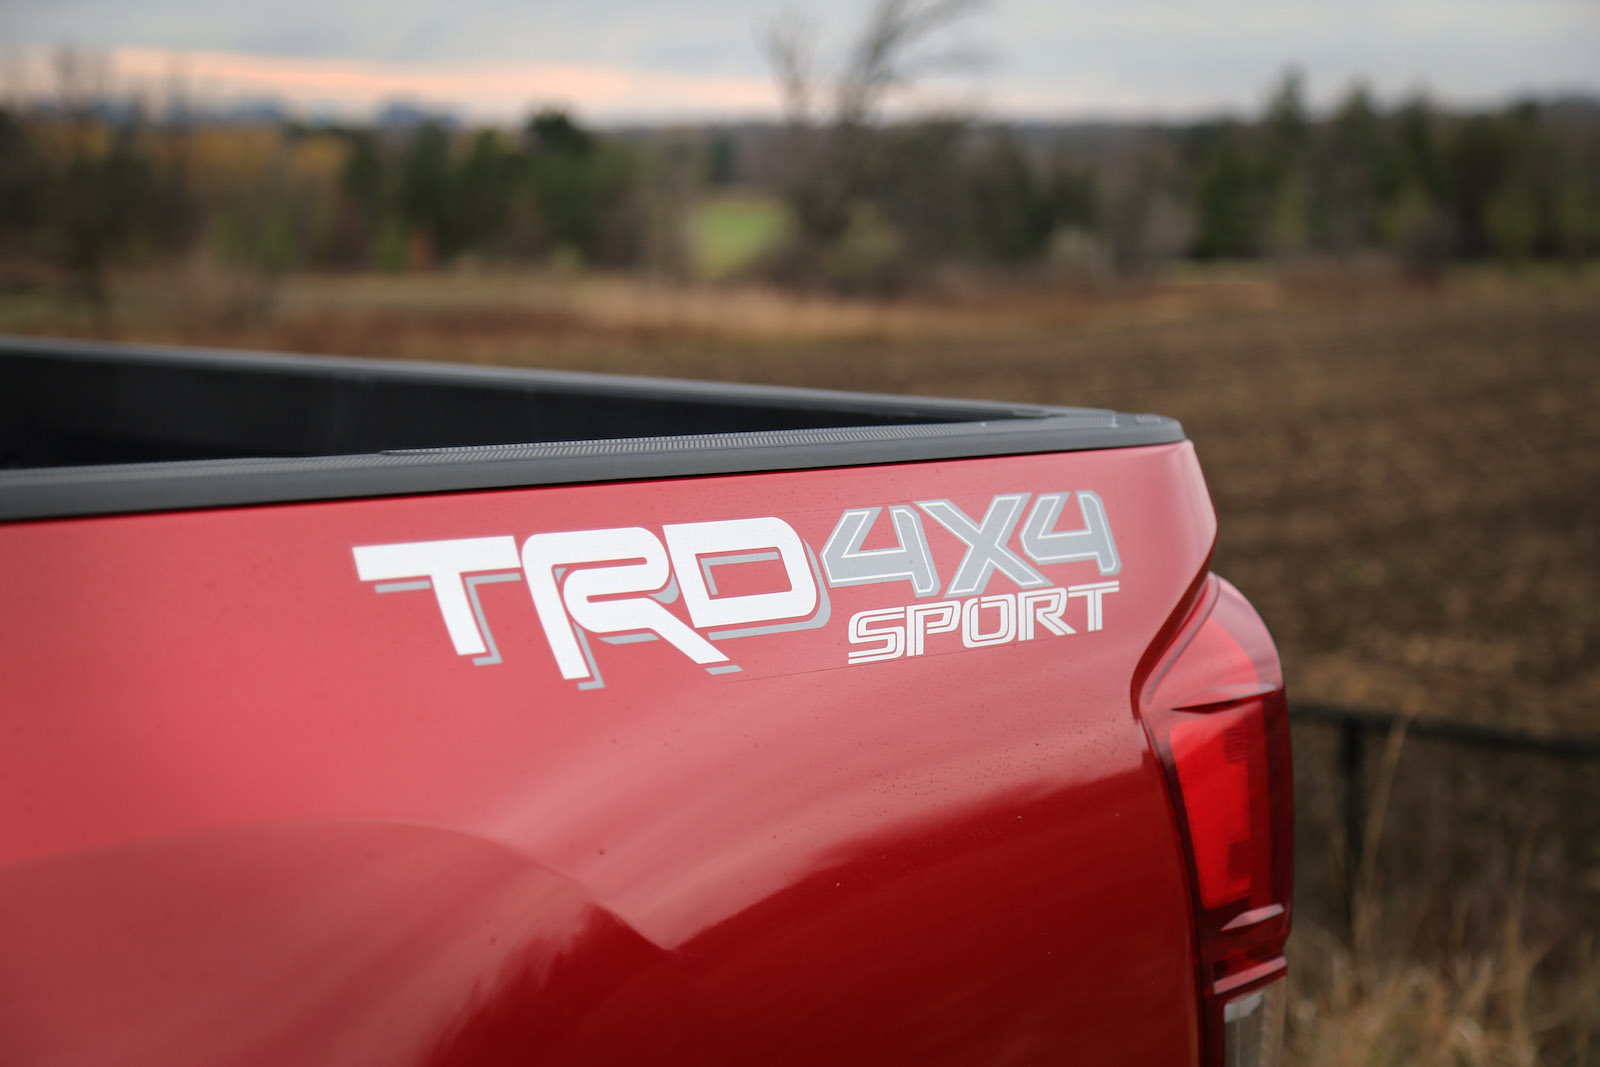 Toyota Trd Truck Sport Off Road X Toyota Racing Tacoma Decal Vinyl Sticker